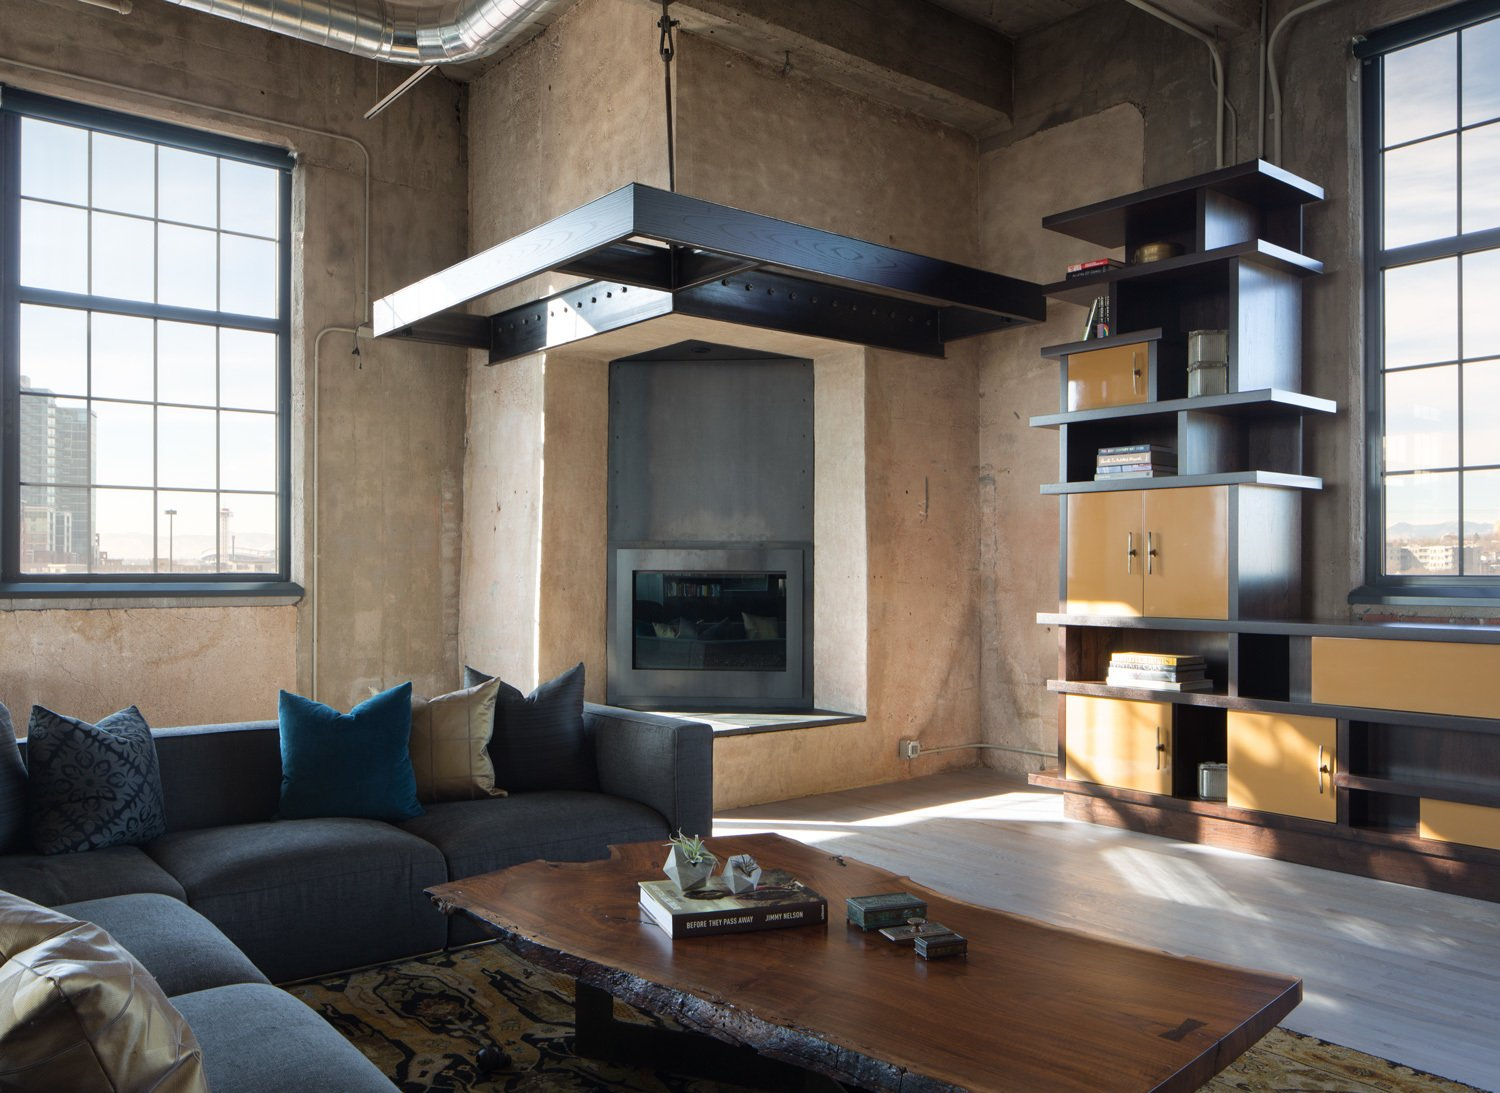 #fireplace #fire #livingroom #lounge #indoor #interior #modern #modernarchitecture #lounge #industrial #Denver #Colorado #RobbStudio #StidioGild   Photo by David Lauer  Modern Homes in Colorado by Luke Hopping